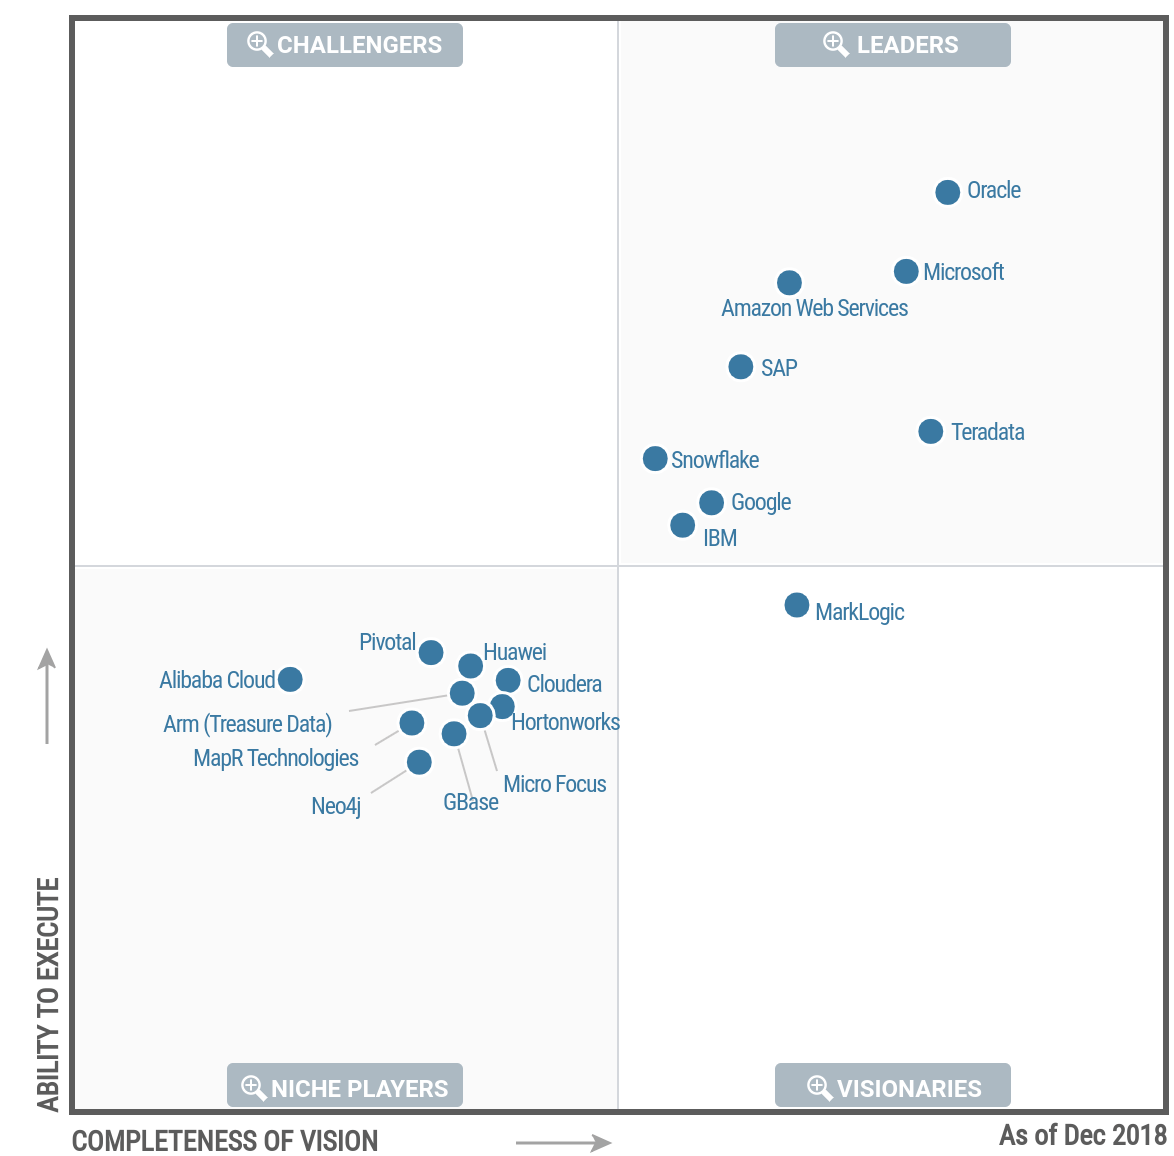 Gartner Magic Quadrant for Data Management Solutions for Analytics